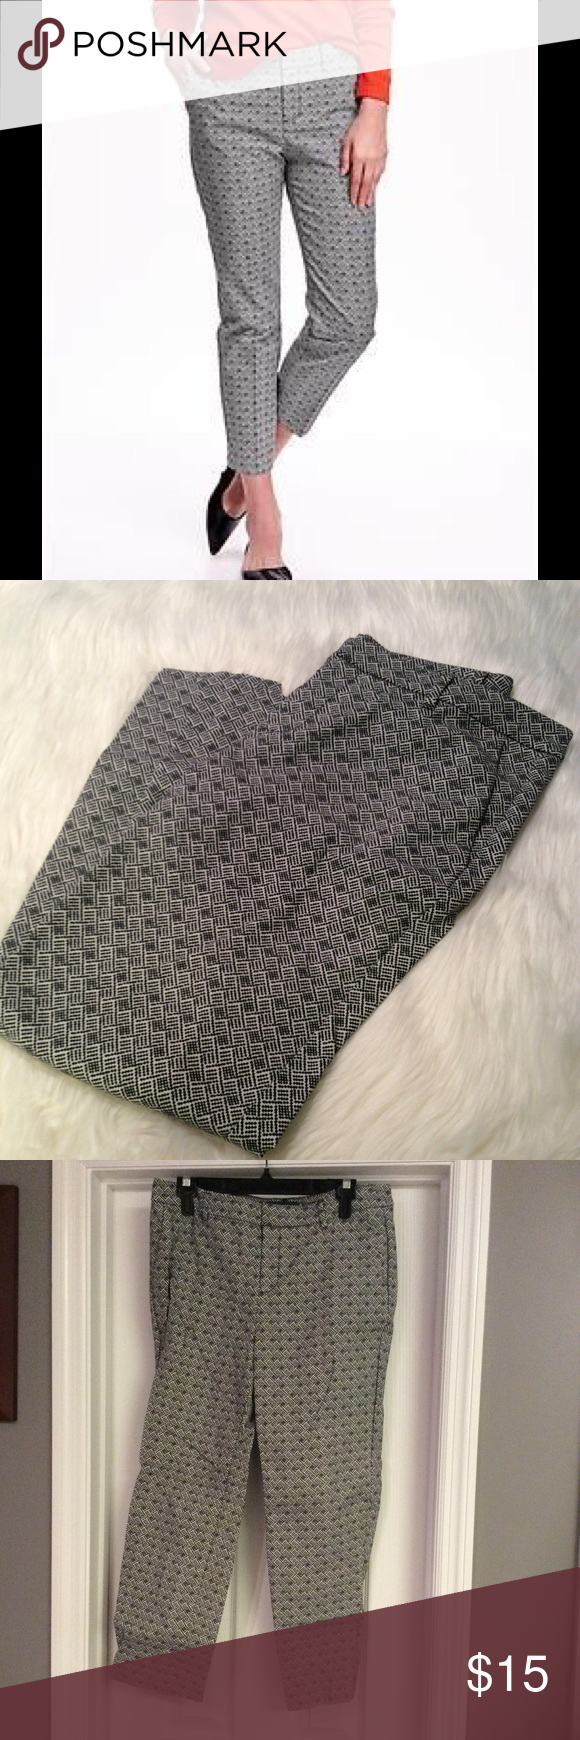 Old Navy Black and White Print Harper Ankle Pants Worn once! Beautiful print! Old Navy Pants Ankle & Cropped